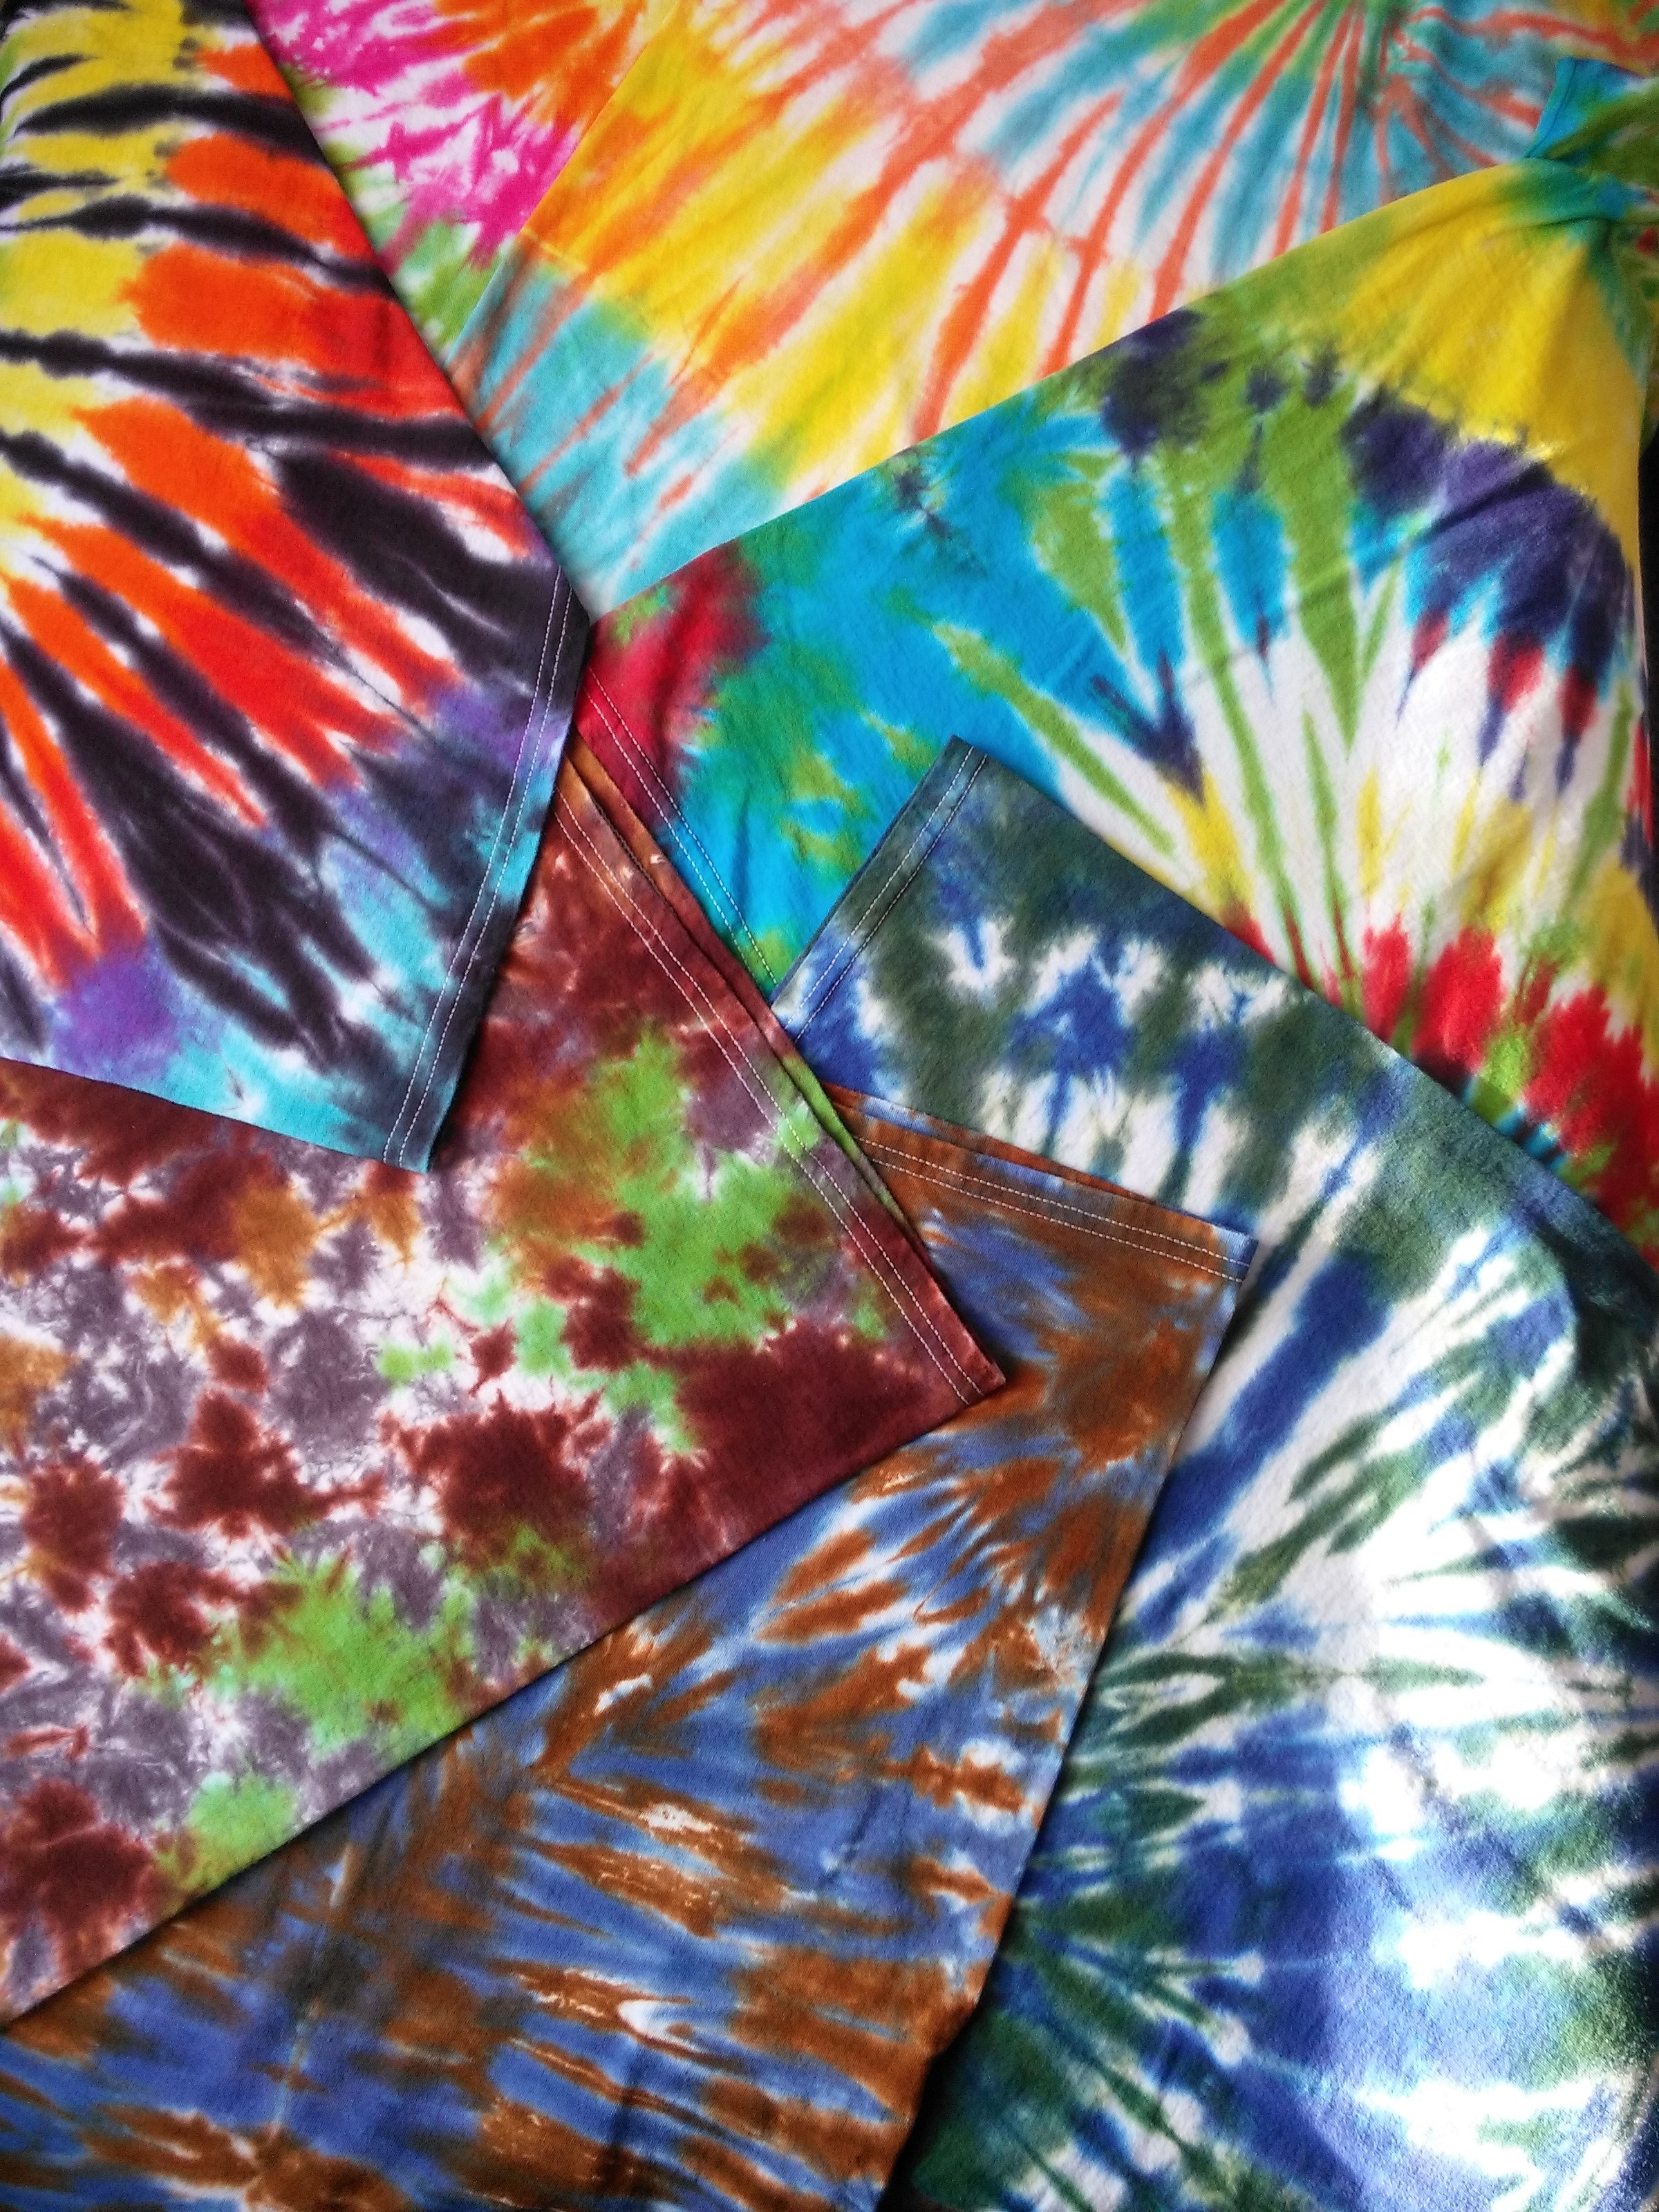 Tie Dye for our cause